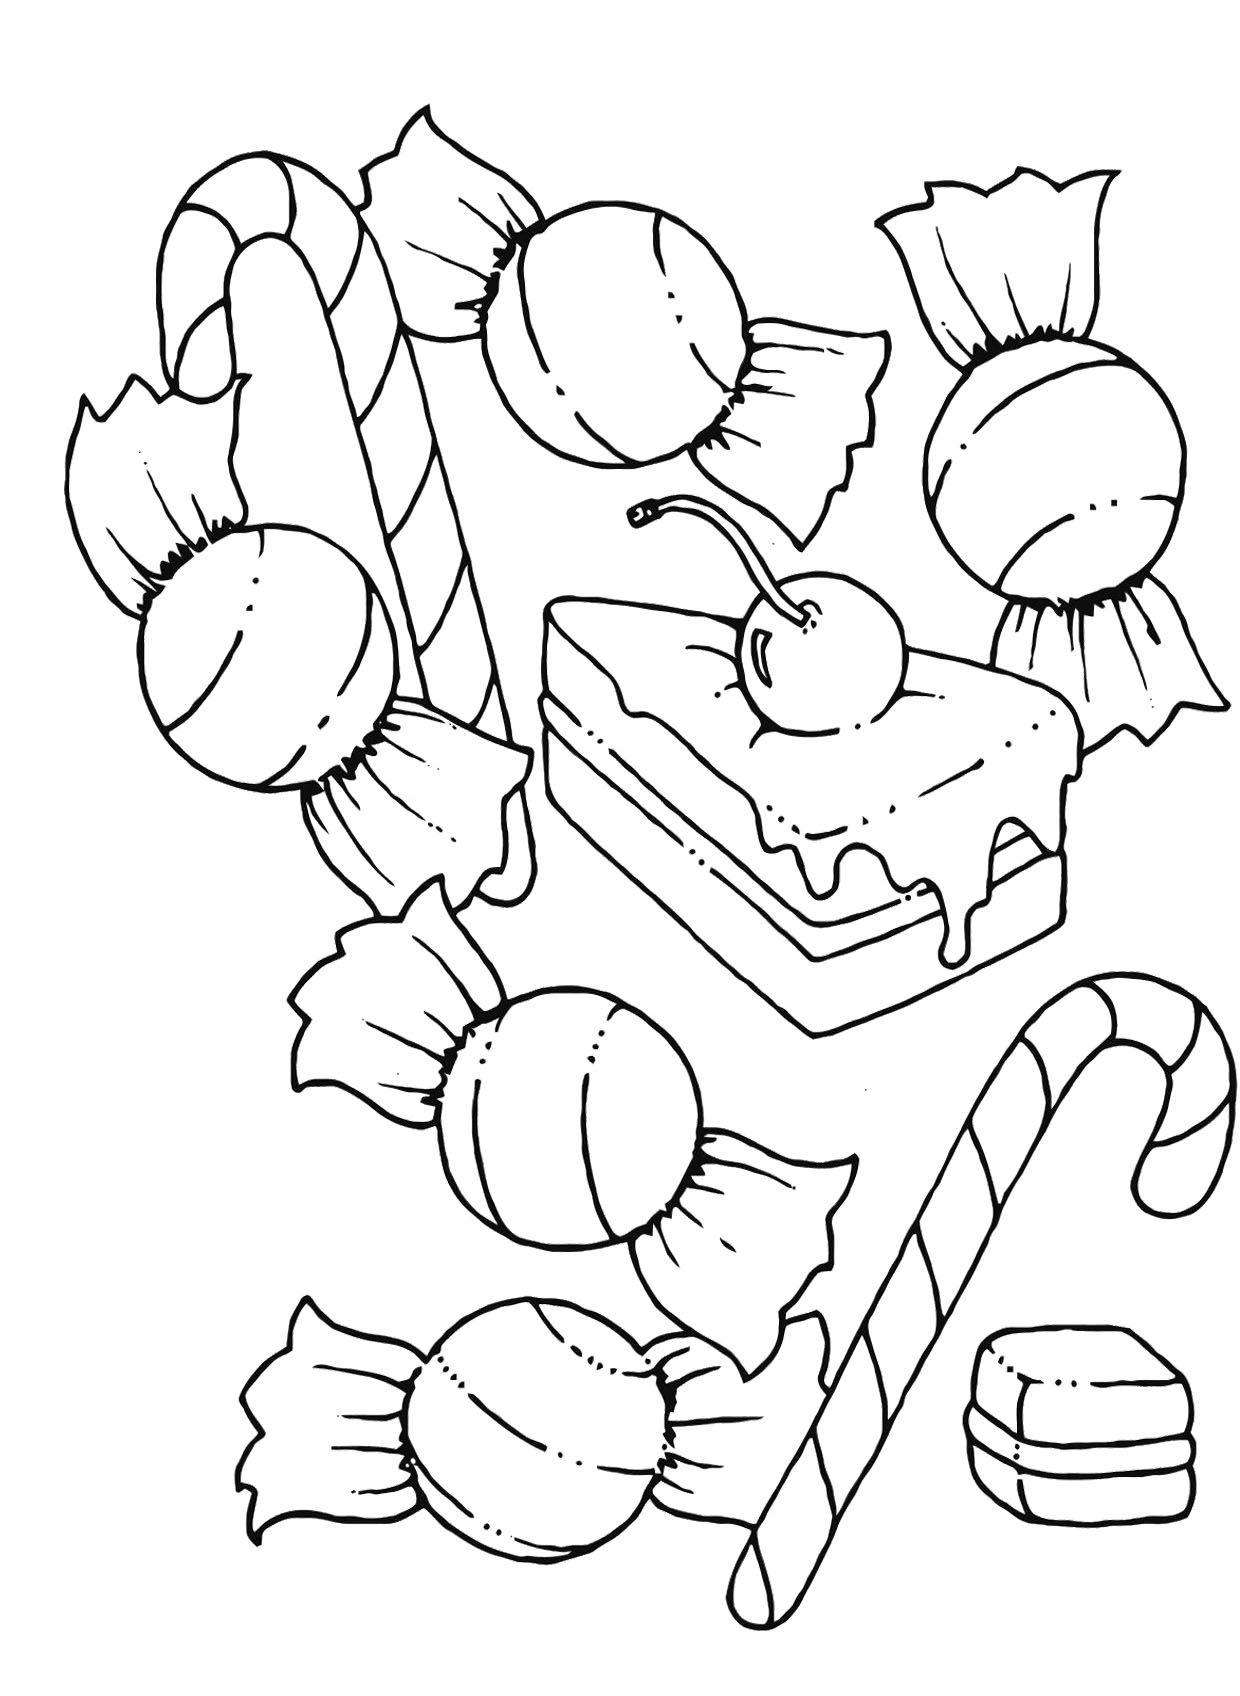 A Collection Of Delicious Candy Coloring Pages